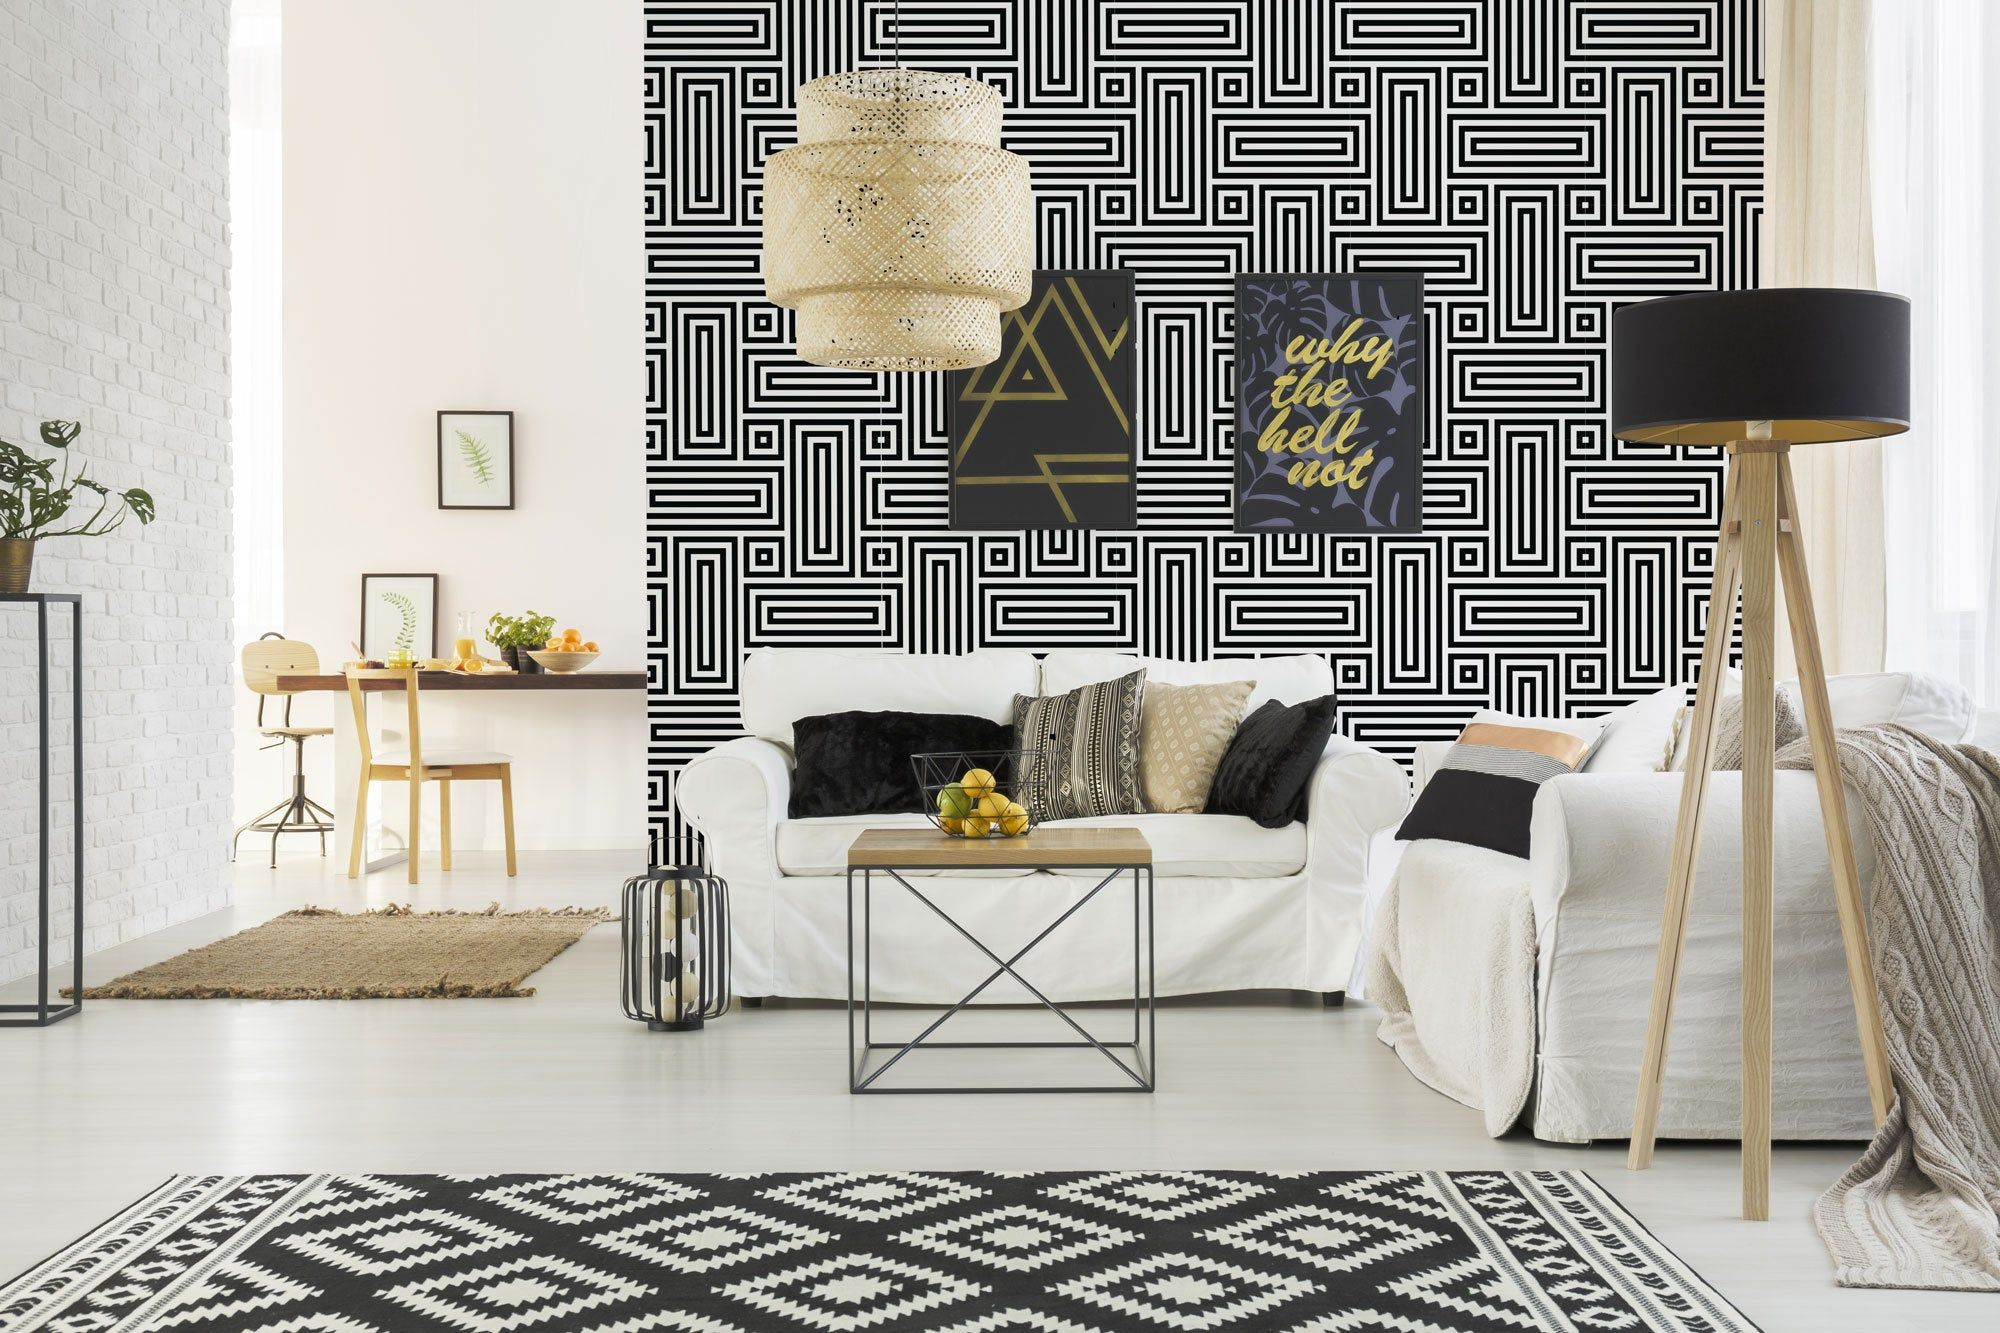 Geometric Pattern Removable Wallpaper Design Black And White Etsy Removable Wallpaper Traditional Wallpaper Peel And Stick Wallpaper